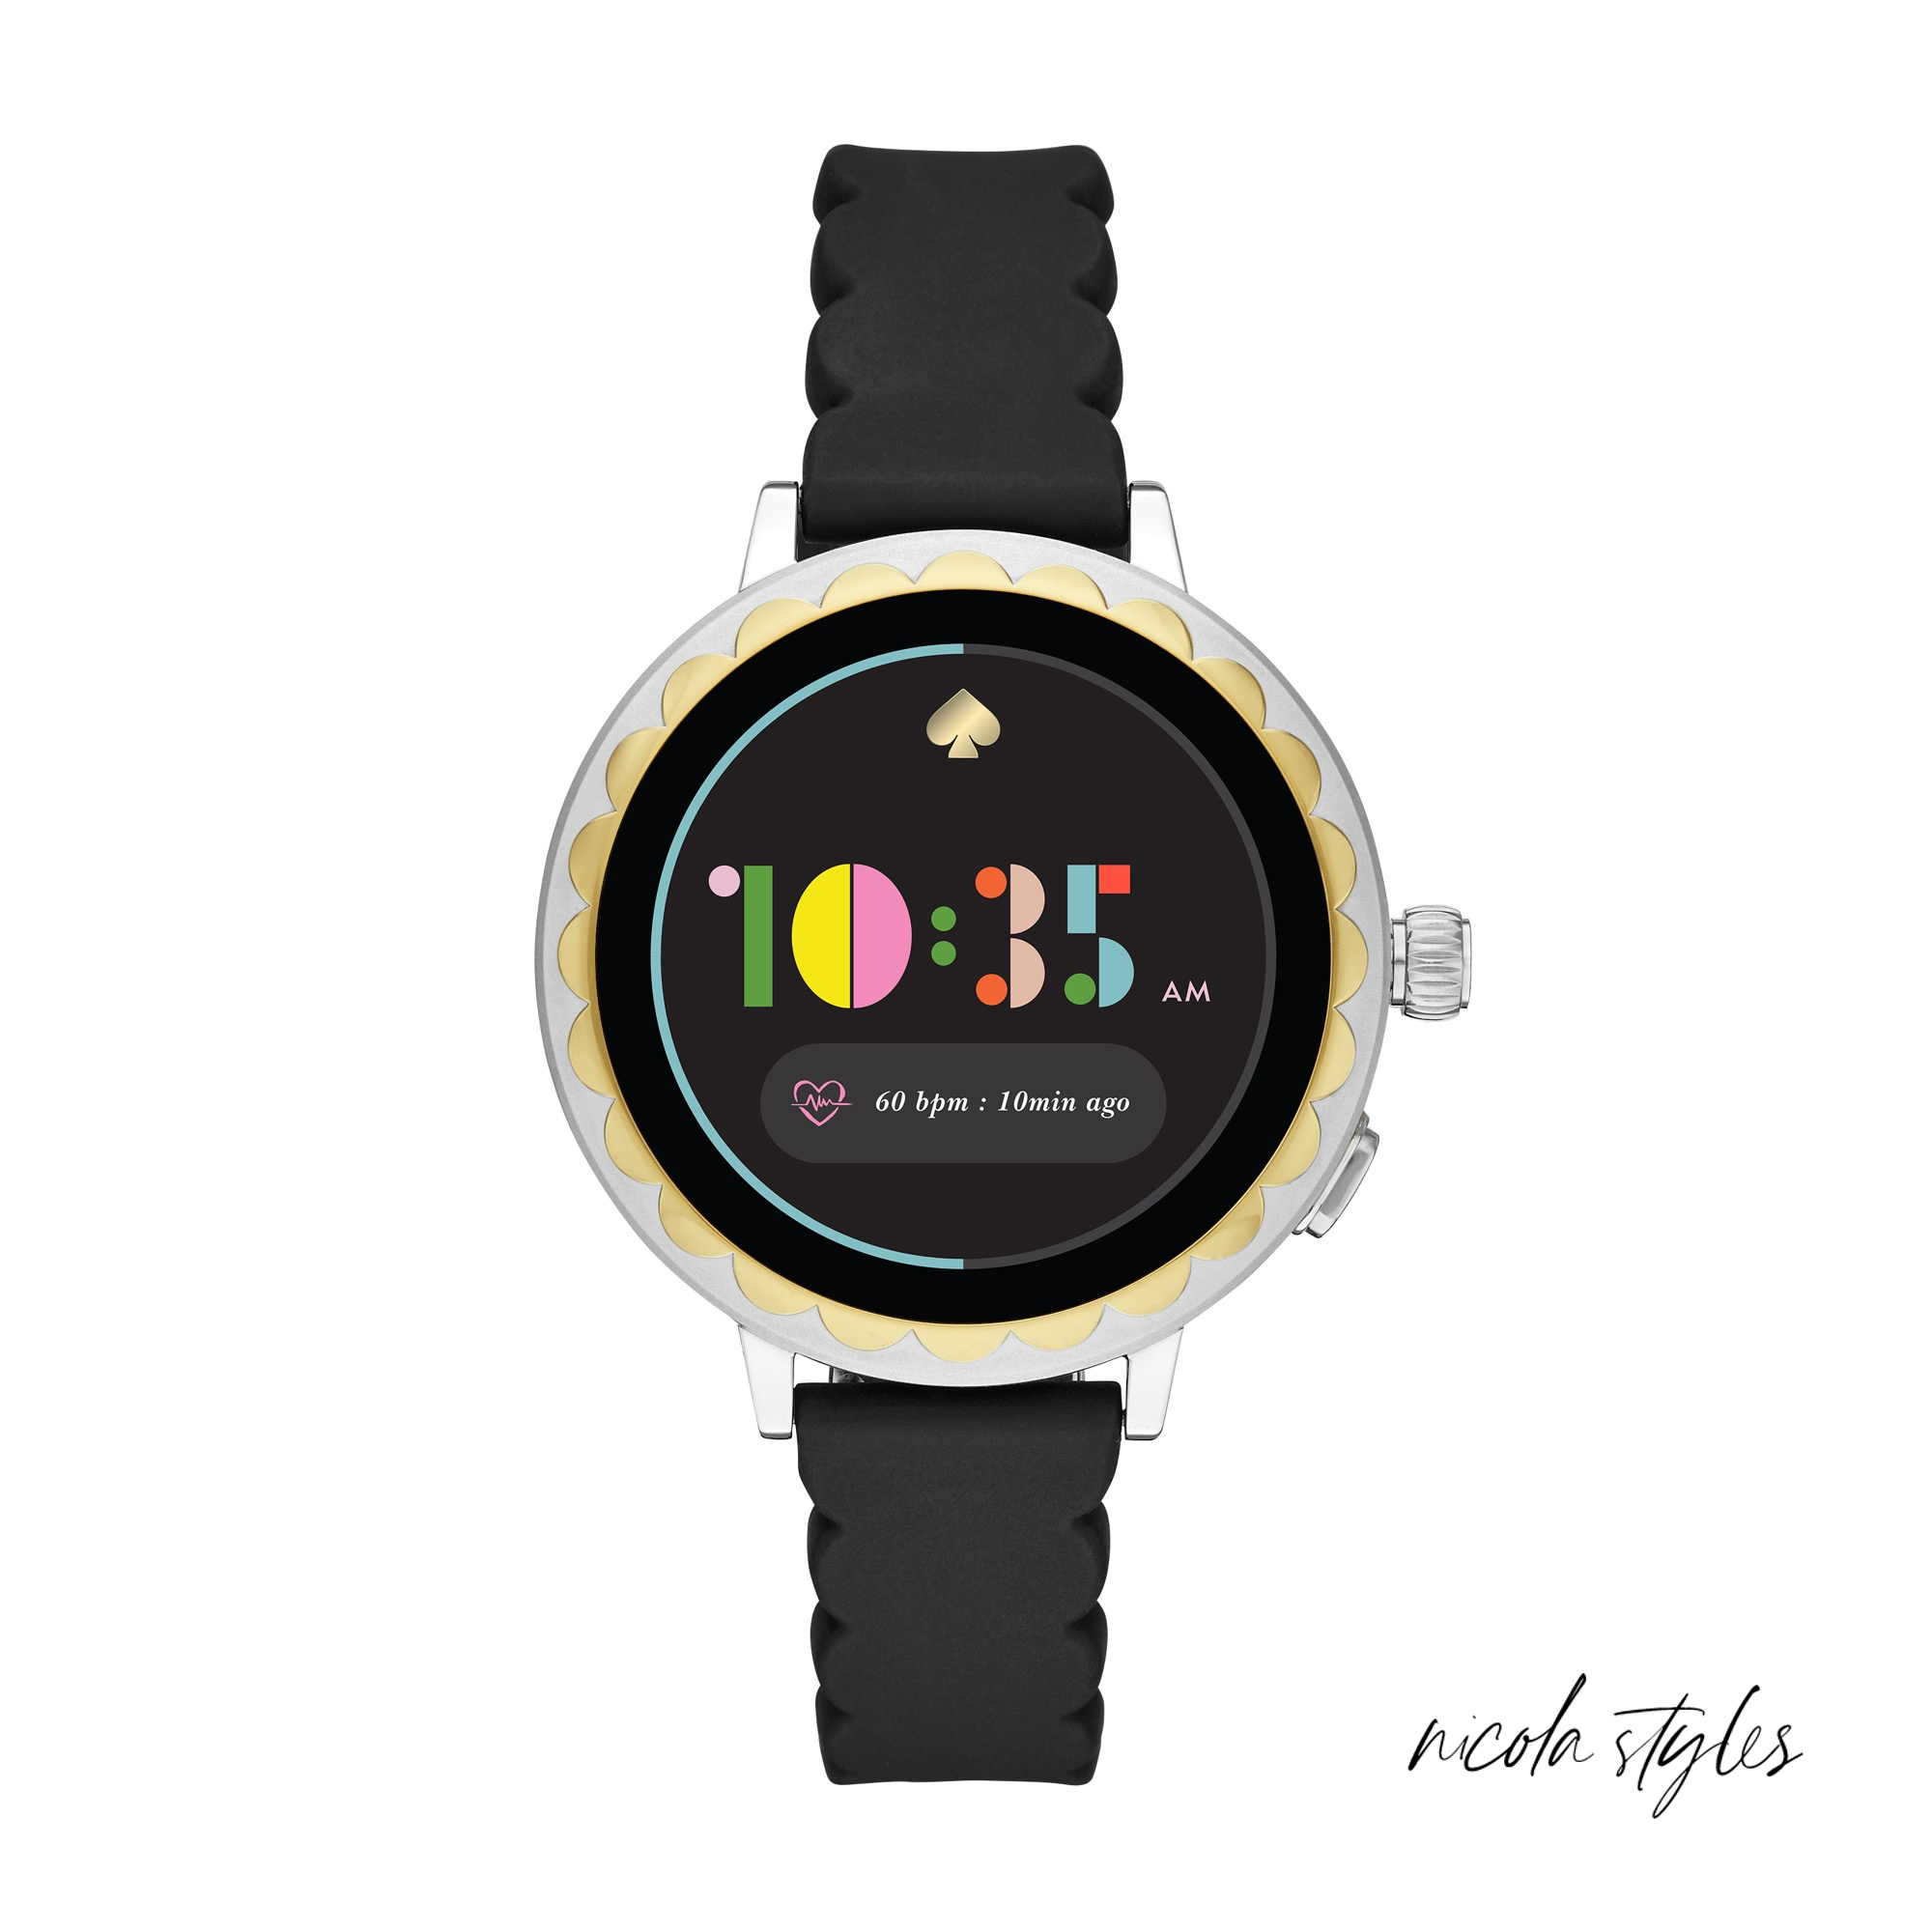 DETAILS - kate spade made this touchscreen smartwatch 2 for those who love to multi-task and multi-slack. It keeps you wise to the time and comes equipped with stylish tools (you can match the watch face to your outfit) and ones to stay organized on-the-go or on the couch. Powered by Wear OS by Google™, it lets you download apps, track activities, monitor your heart rate, access google assist, make payments, and set personal goals. You can also get calls, message and app alerts, toggle between function-centric screens, and control music. The device is voice-activated (hello!) and pairs wirelessly with both iPhones® and Android™ phones.